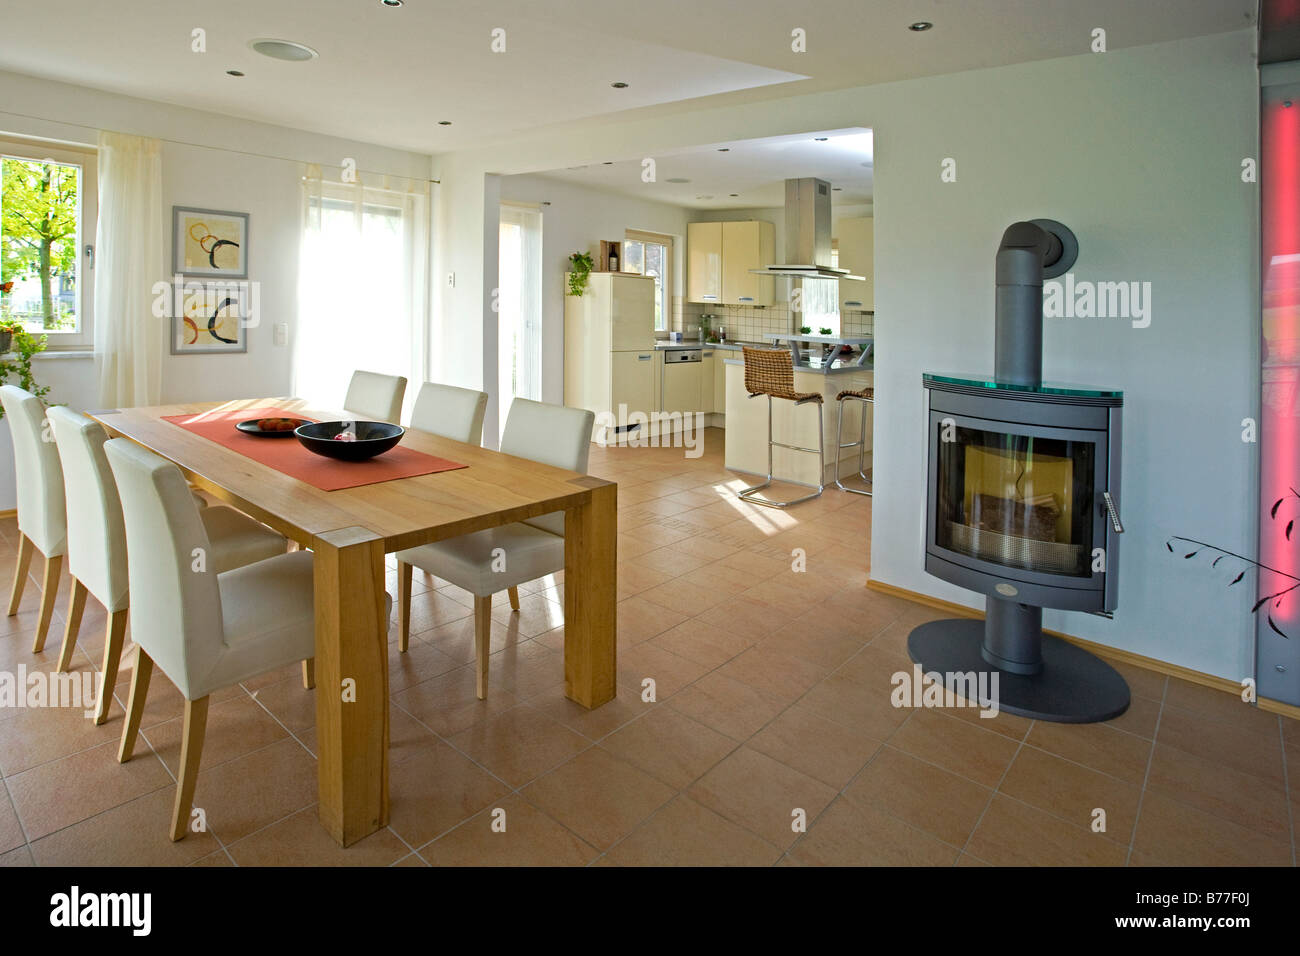 Modernes Esszimmer Modernes Esszimmer Modern Dining Room Stock Photo 21678402 Alamy